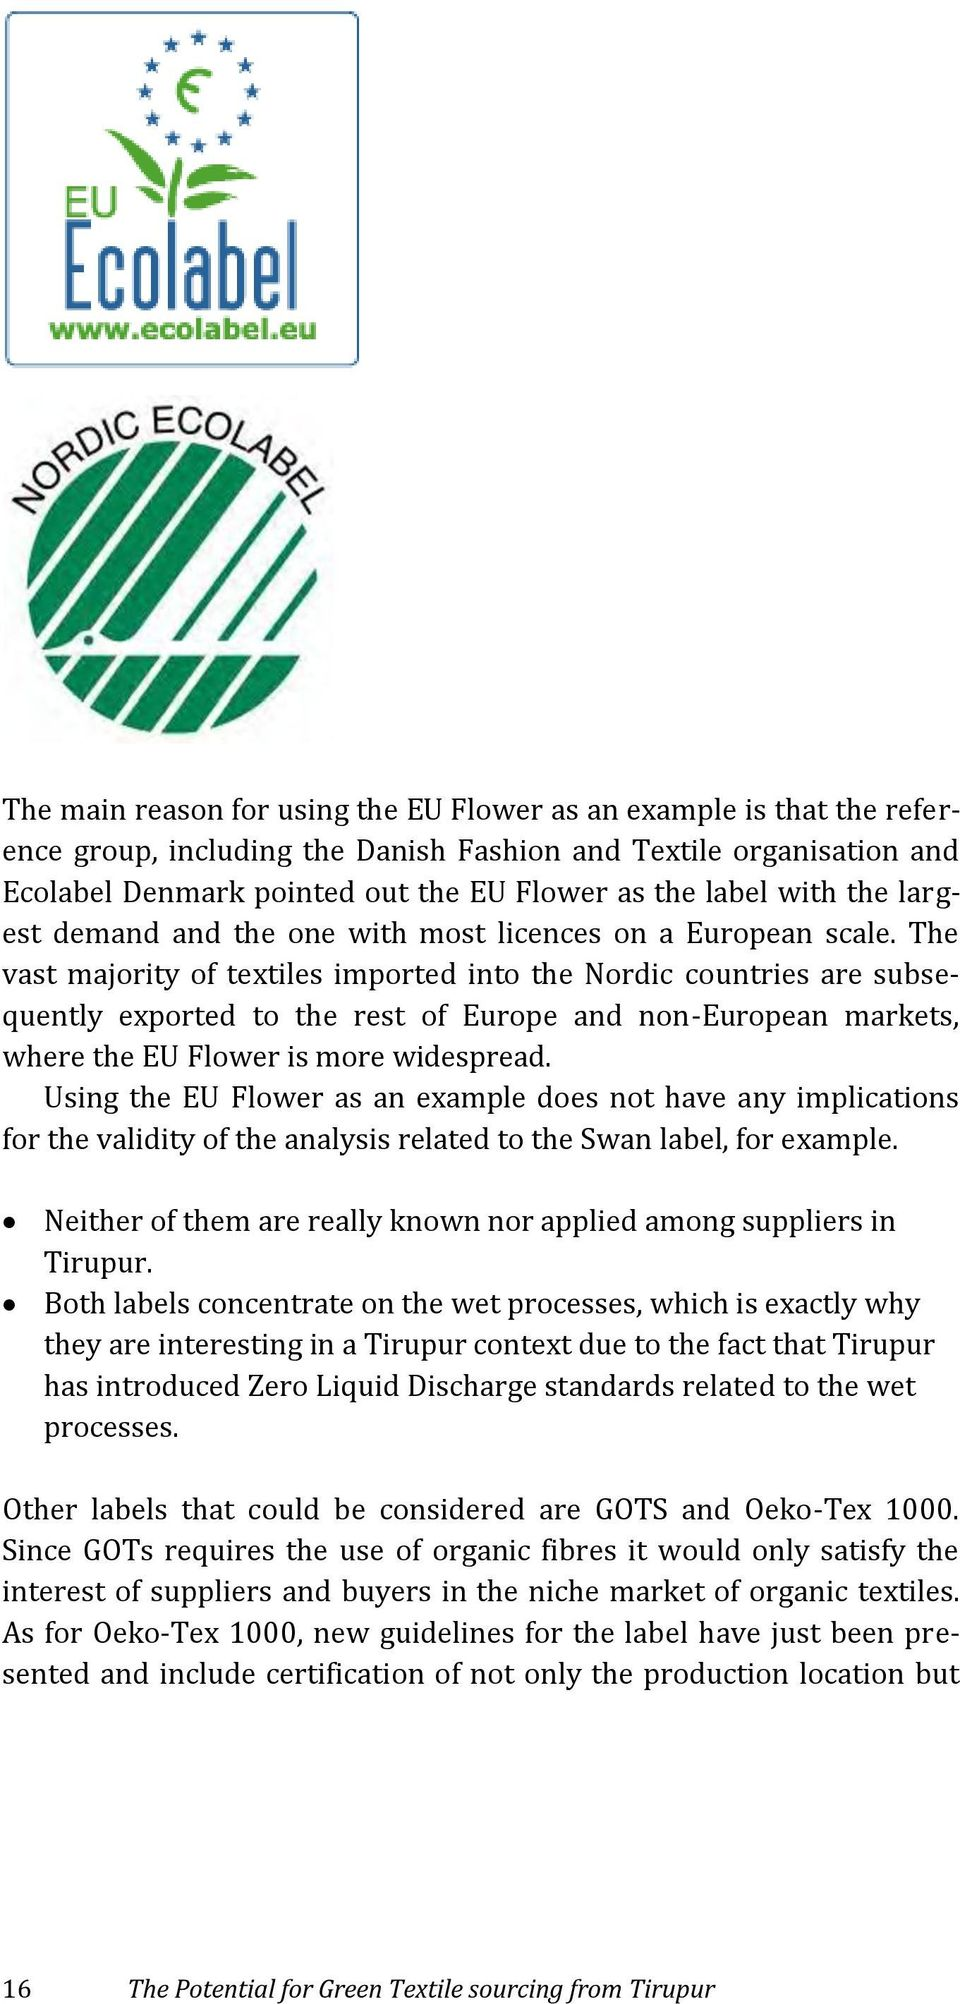 The vast majority of textiles imported into the Nordic countries are subsequently exported to the rest of Europe and non-european markets, where the EU Flower is more widespread.